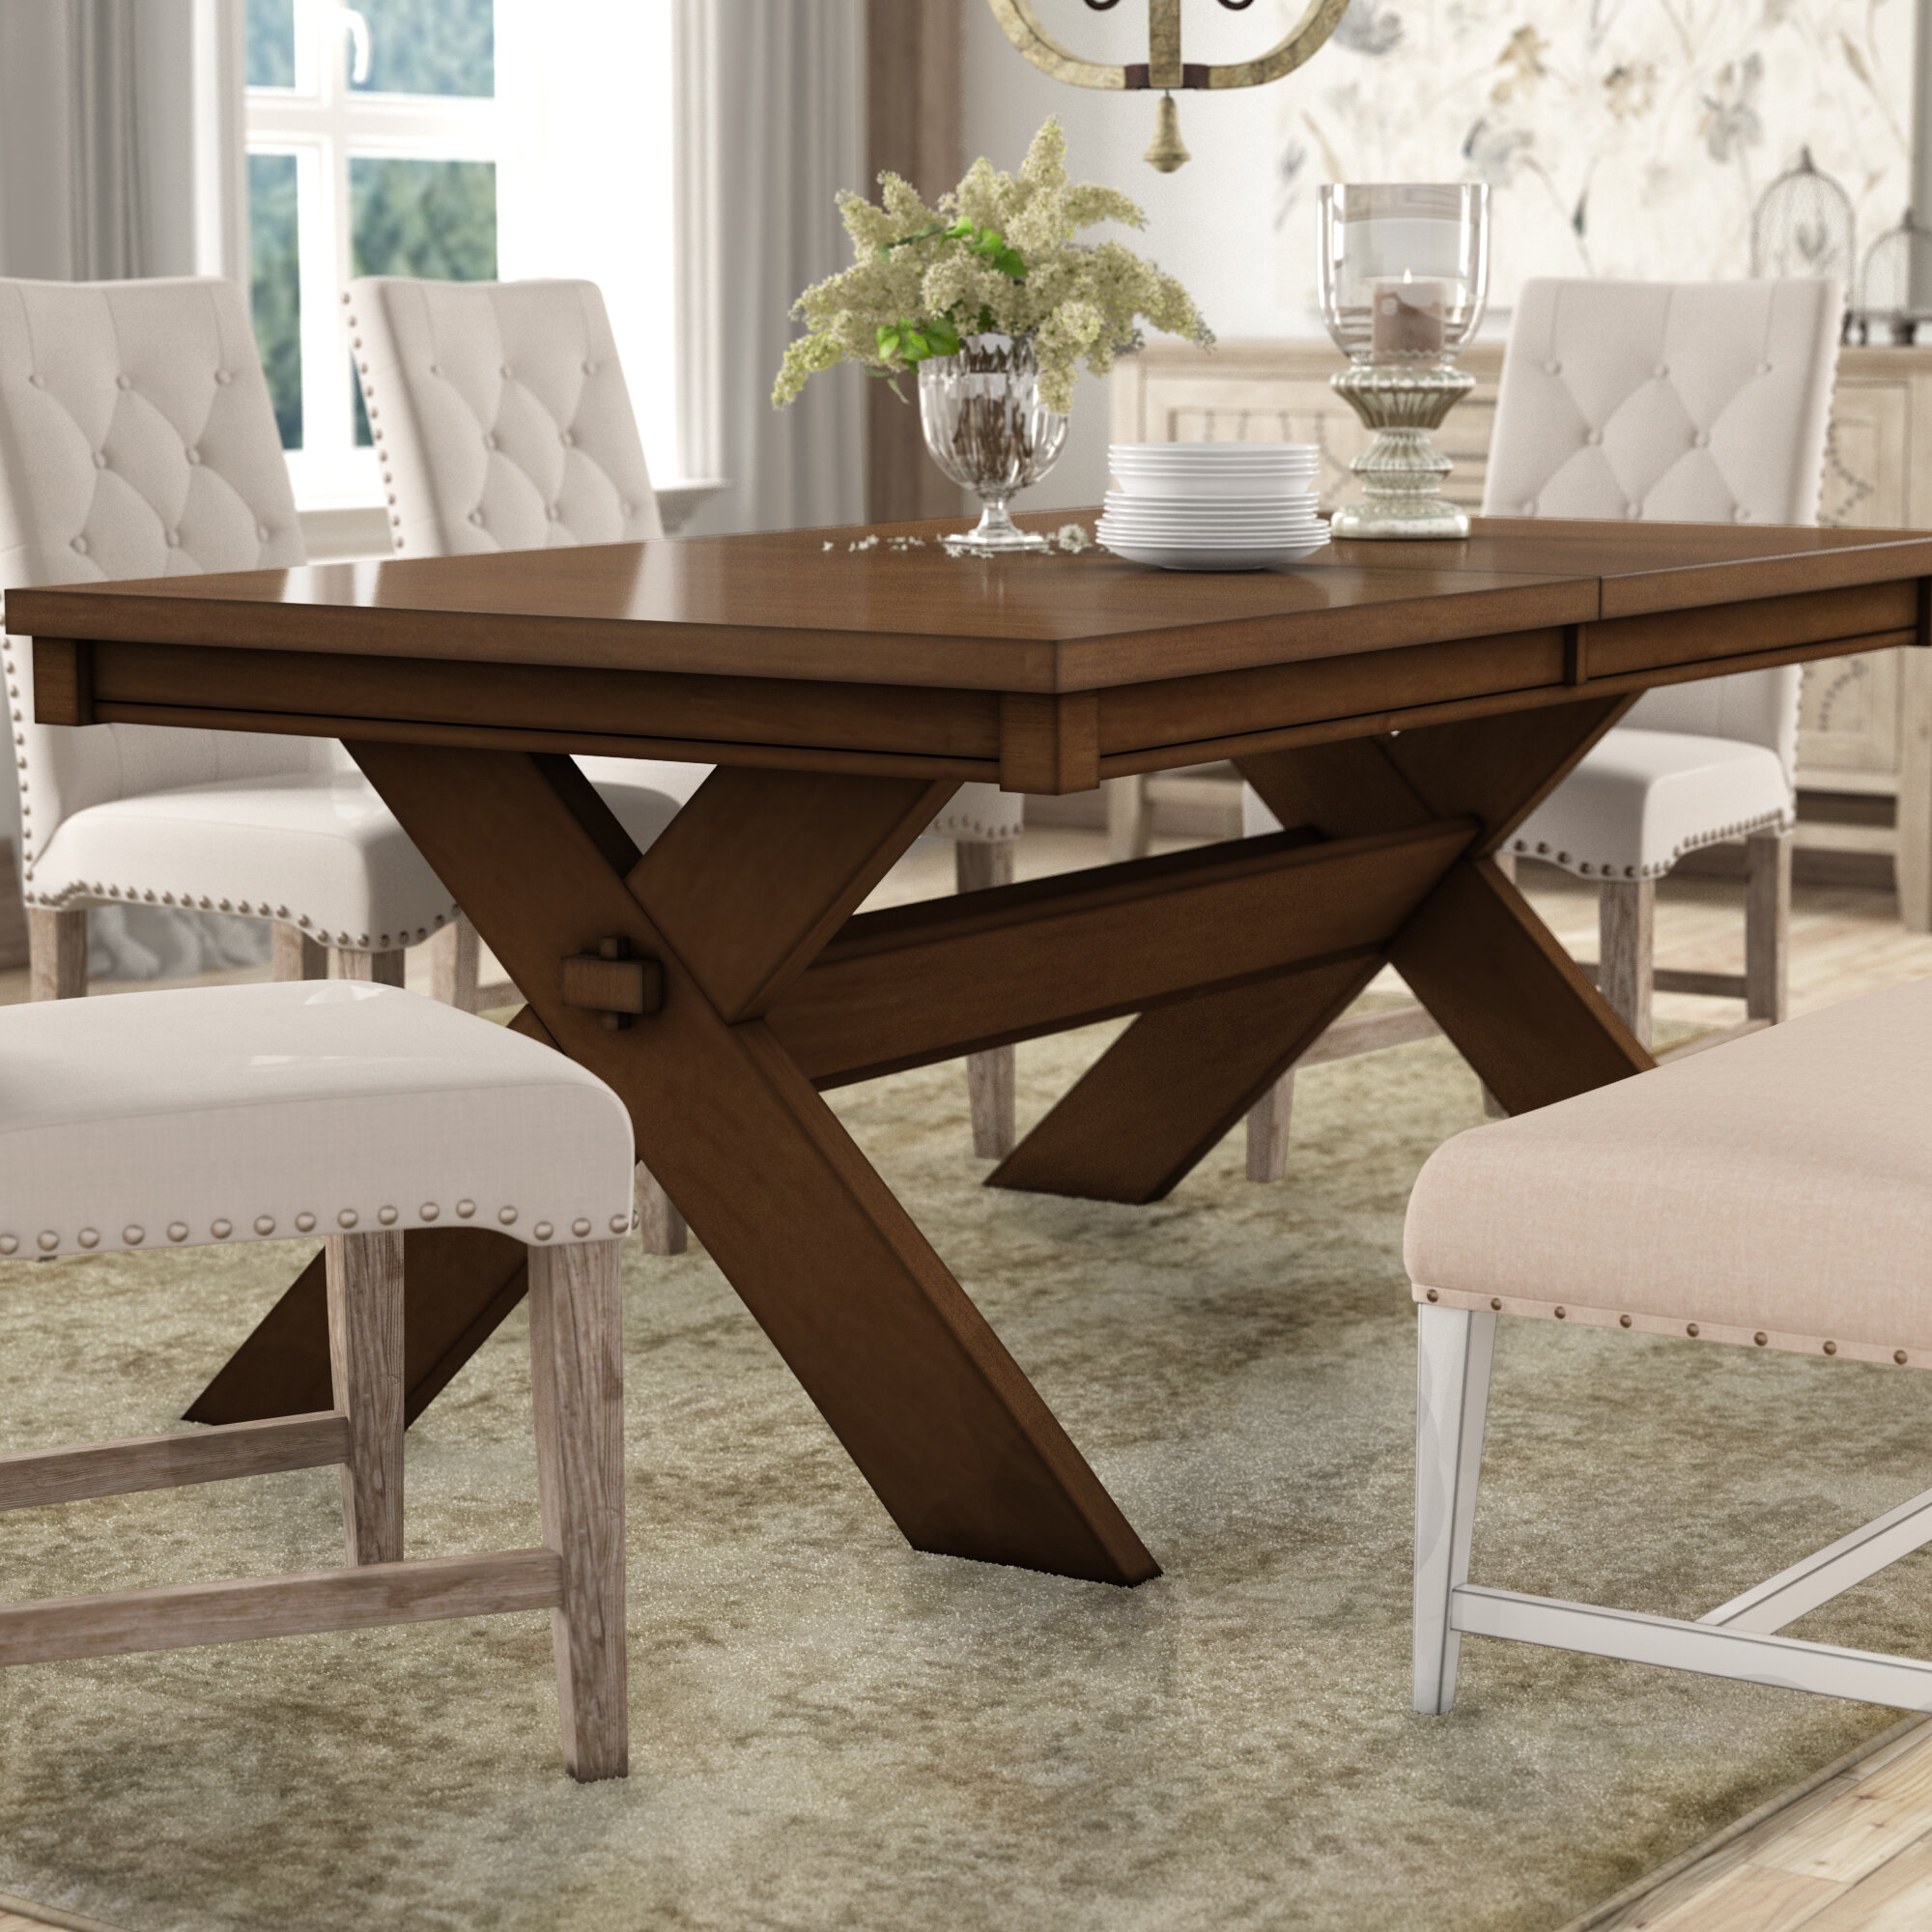 Laurel Foundry Modern Farmhouse Isabell Acacia Butterfly Leaf Extendable Solid Wood Dining Table Reviews Wayfair,Golden Girls Home Floor Plan